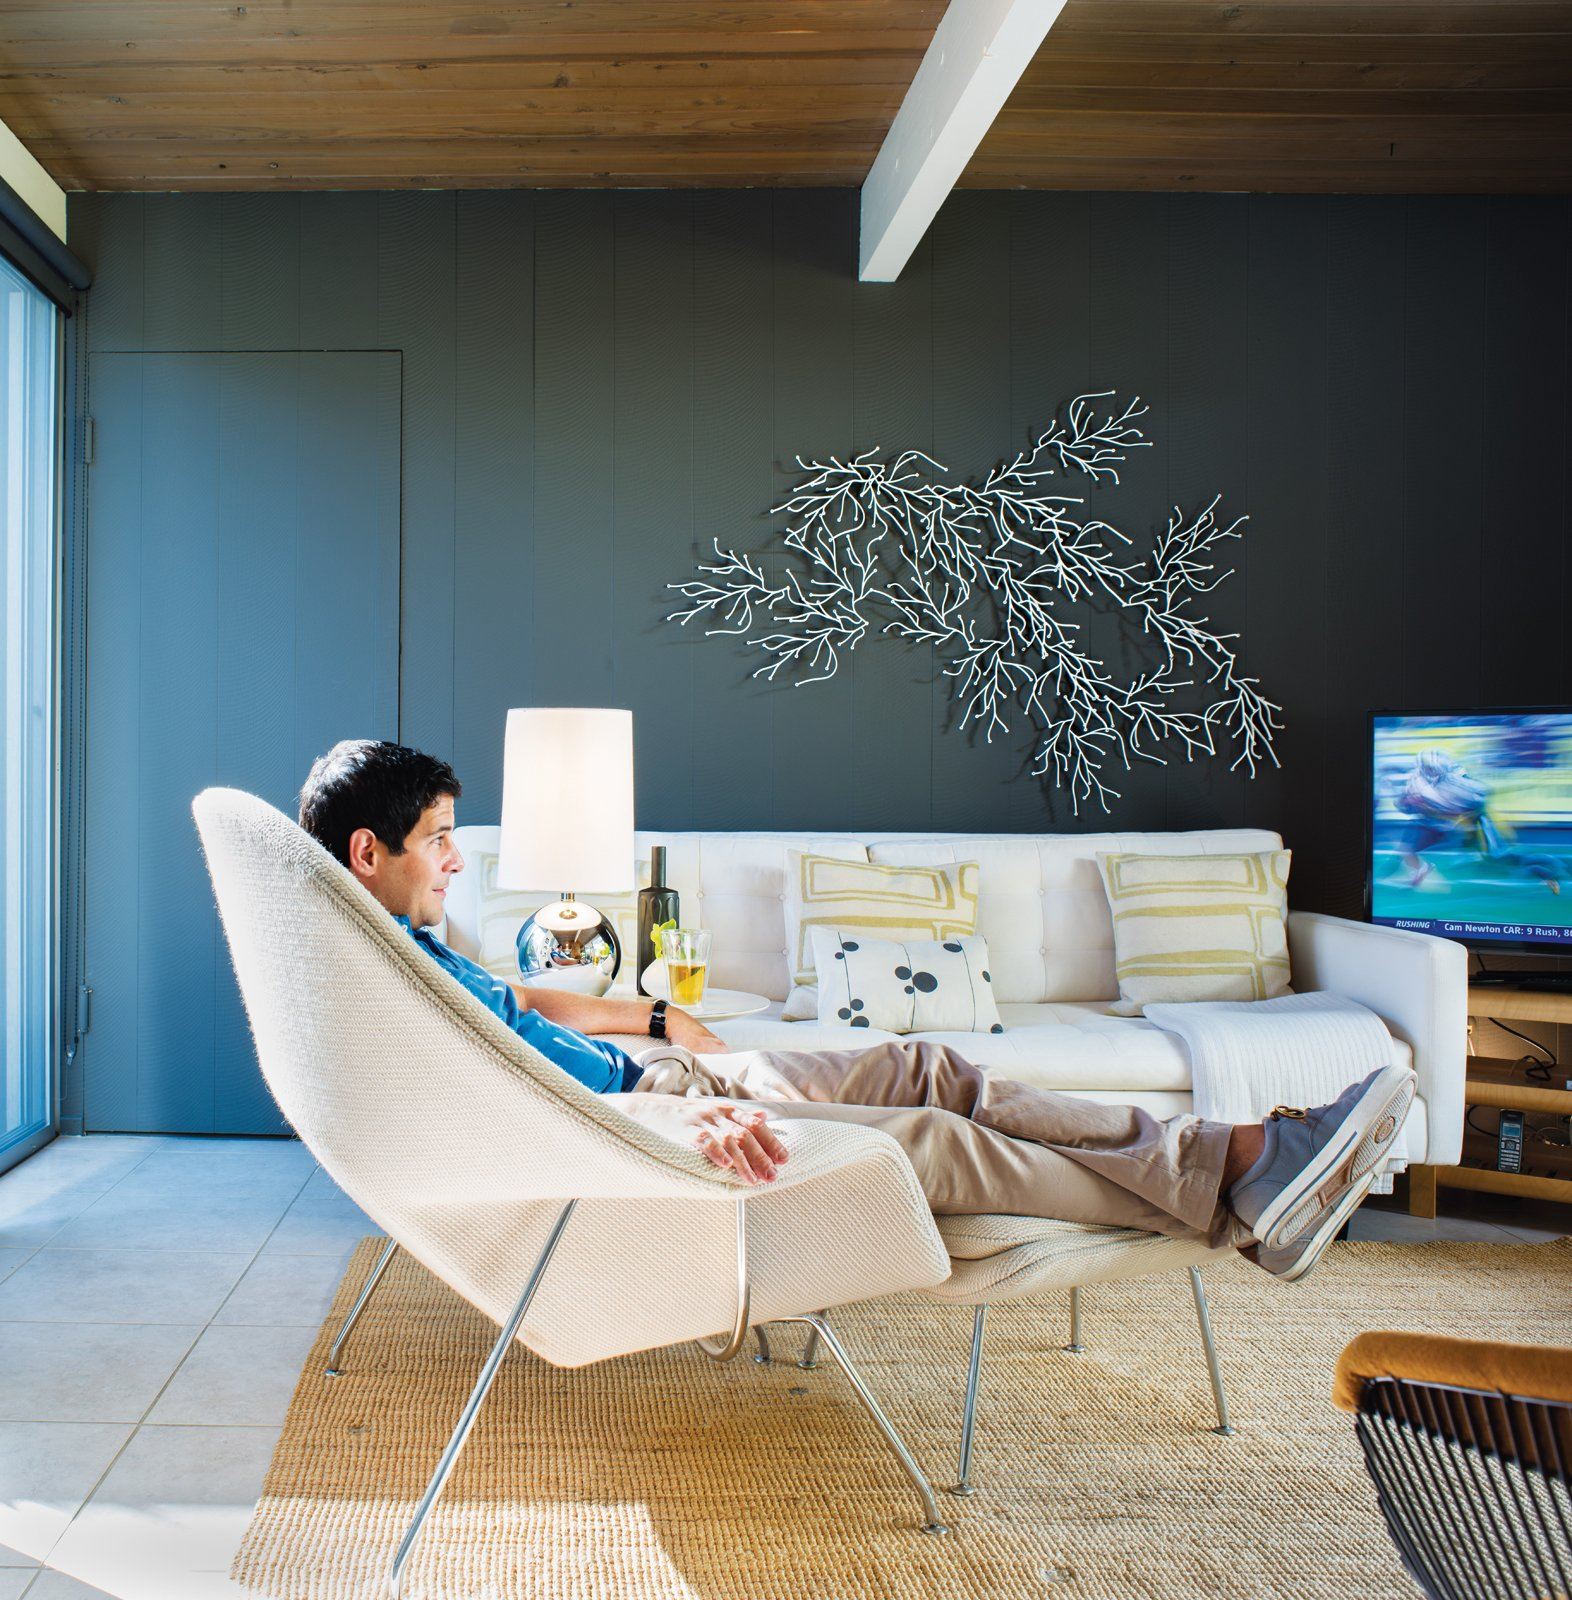 """See for Yourself  After painting the sitting room room Kendall Charcoal from Benjamin Moore's Aura line, Neely wanted a sculptural element that would show up against the dark hue. So he assembled his white Algues set, designed by the Bouroullec brothers for Vitra, on the wall behind the sofa with pillow by Judy Ross. """"Though the Bouroullec piece is manufactured in mass quantities, you can create your own take on it,"""" he says. """"It looks great no matter how you place it. I think of it almost like an inkblot—the randomness is part of its beauty.""""  Midcentury Homes by Dwell from Modern Furniture Fit for a Classic Eichler"""